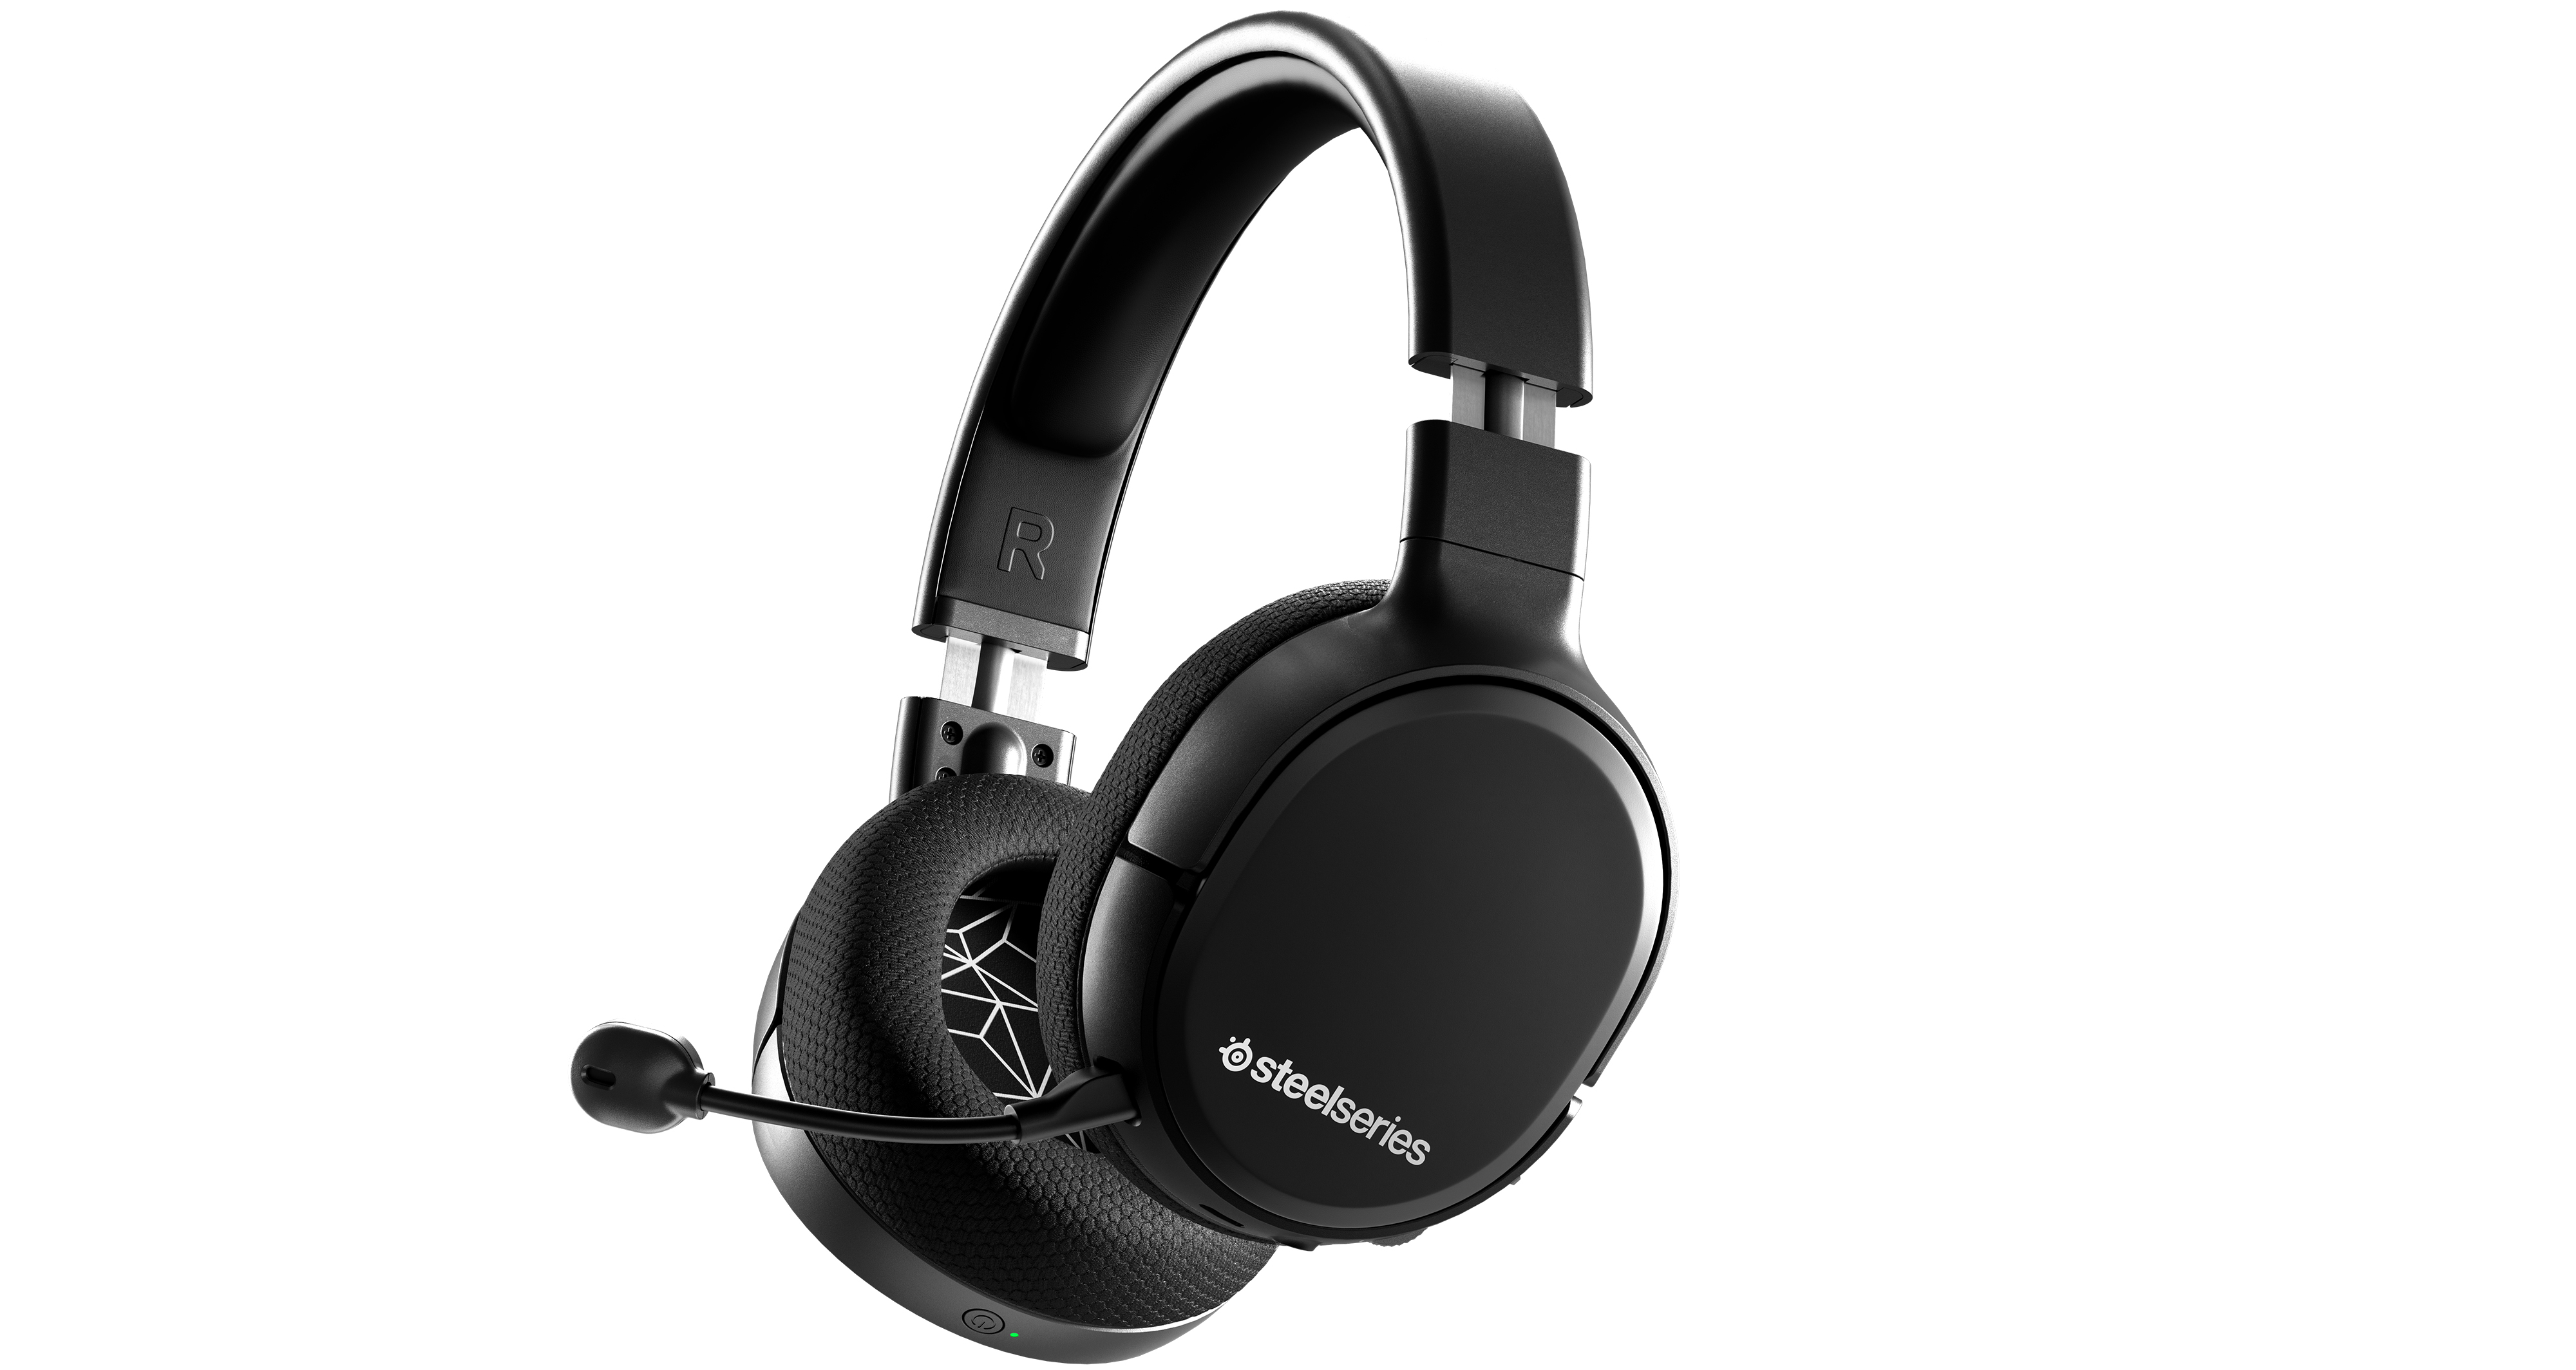 Steelseries - Arctis 1 Wireless Gaming Headset